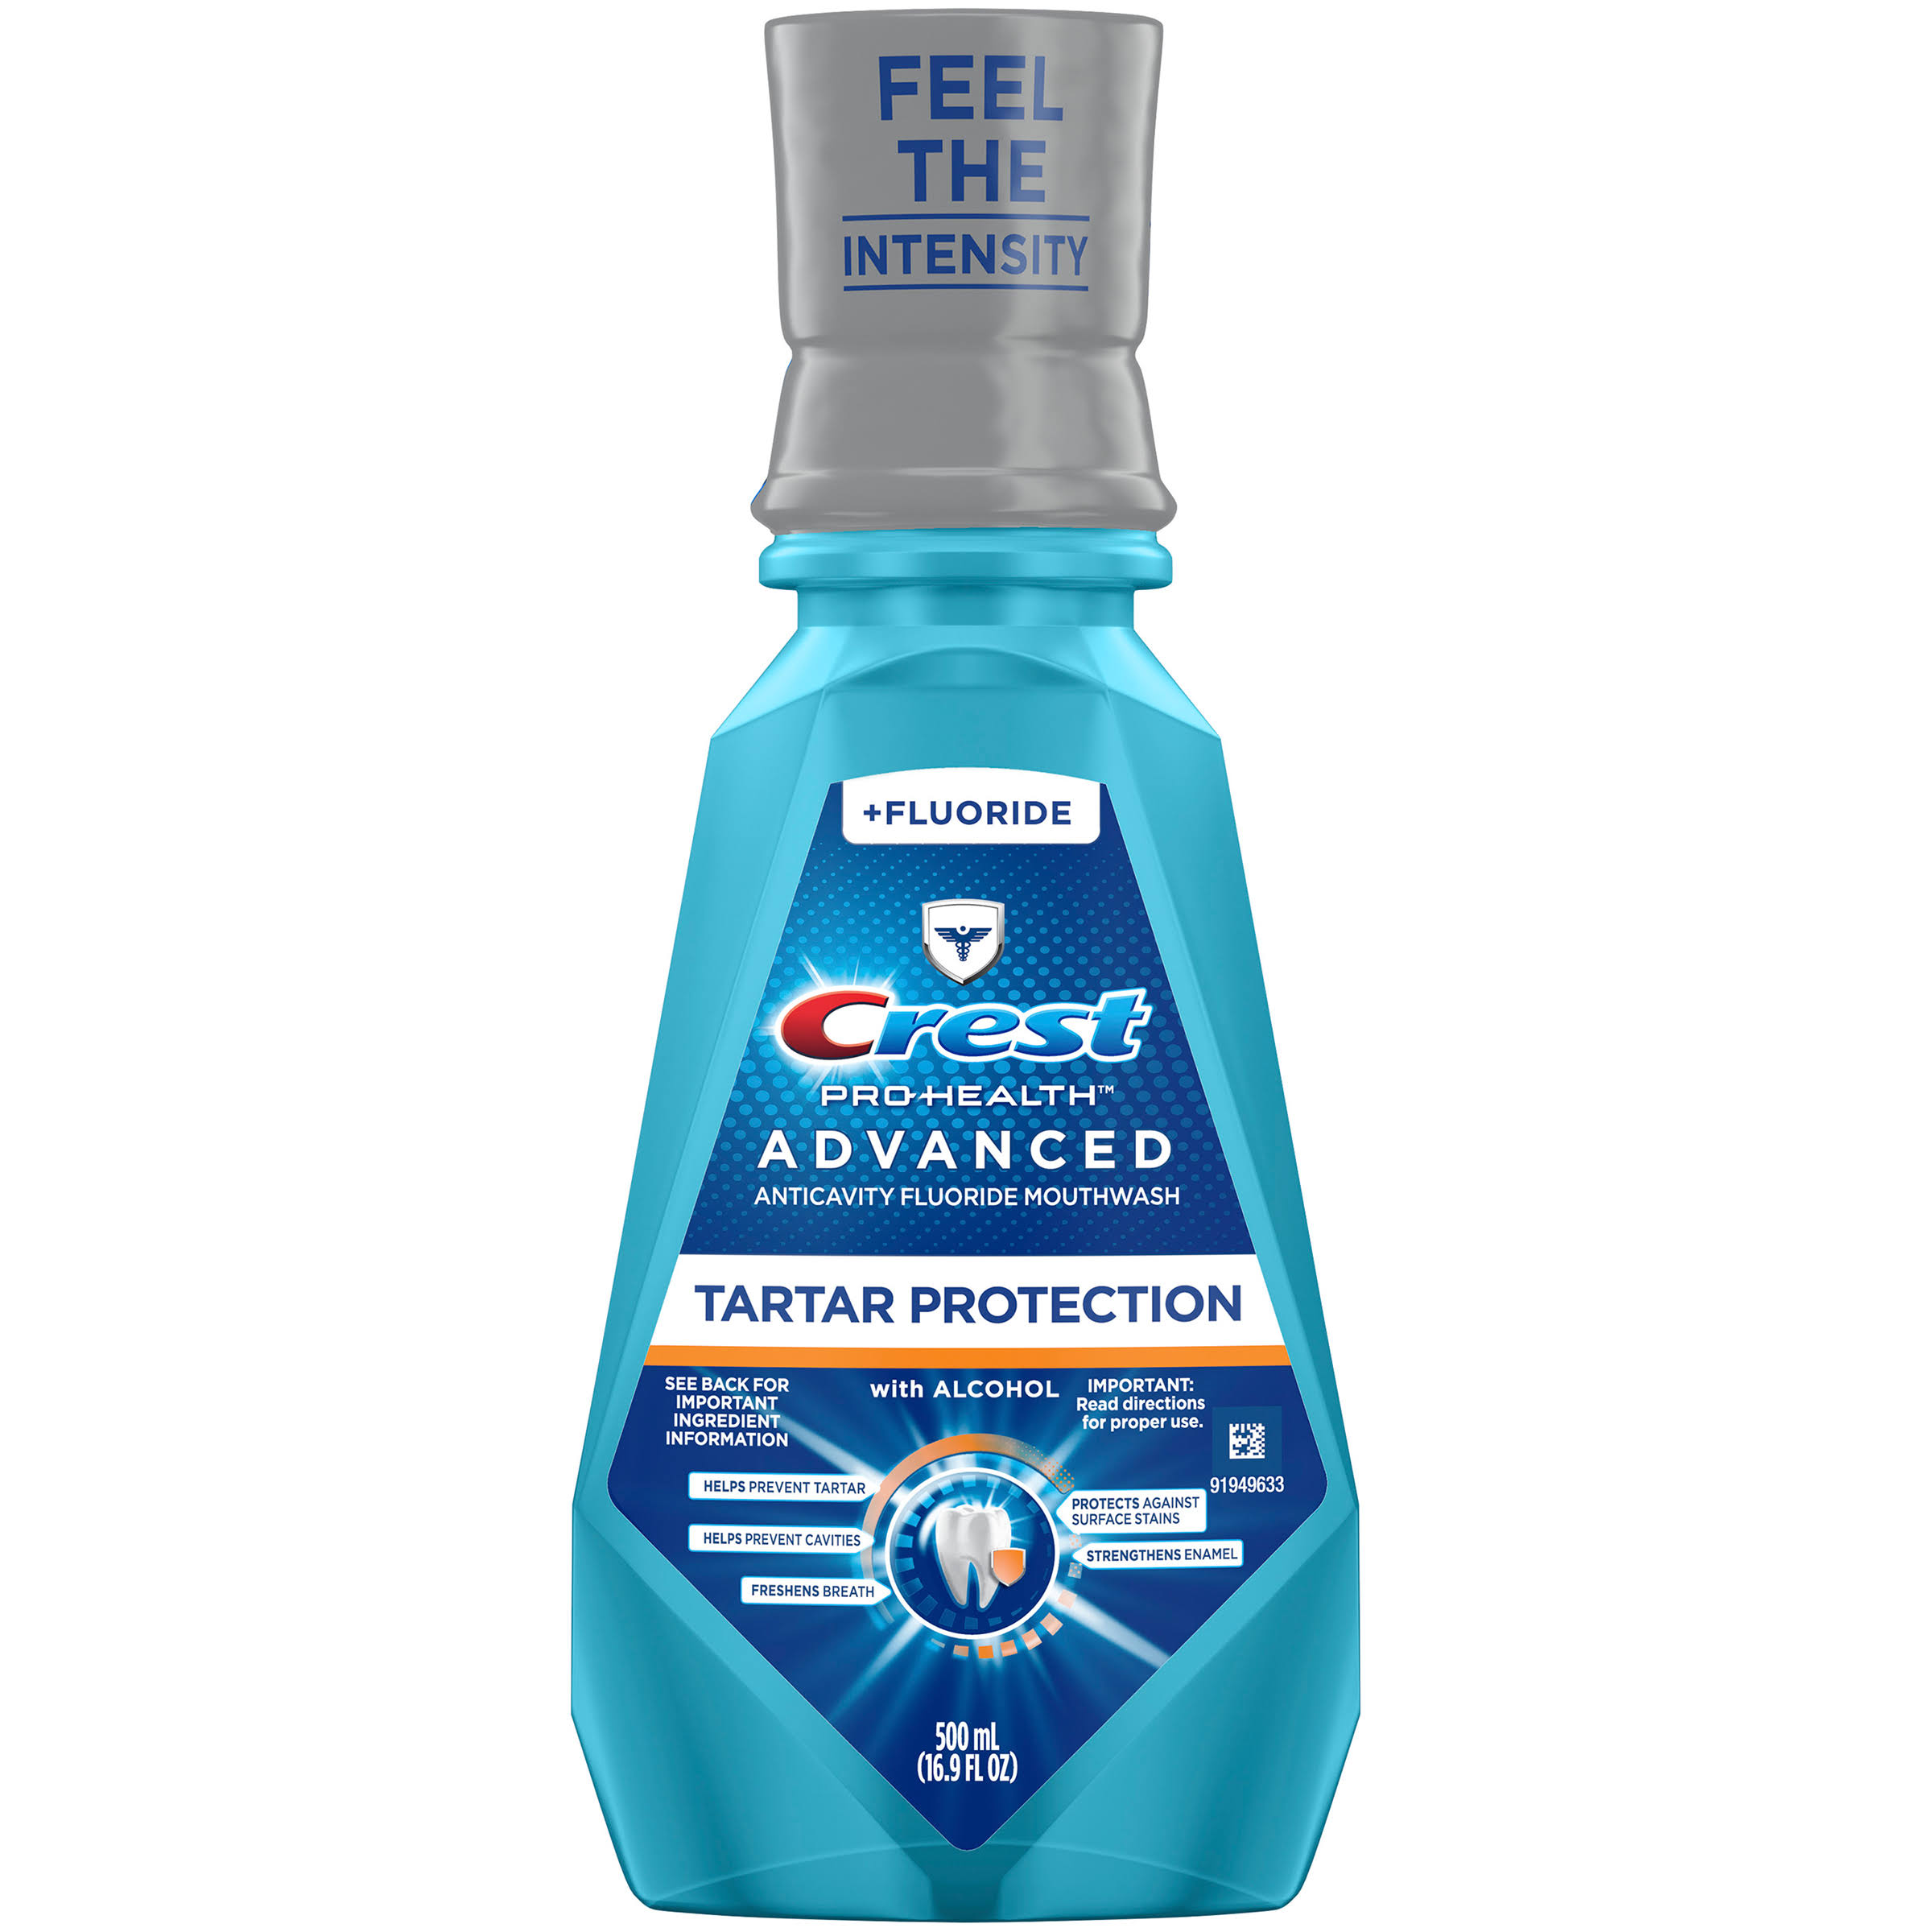 Crest Pro-Health Advanced Extra Tartar Protection Anticavity Fluoride Mouthwash - 16.9oz